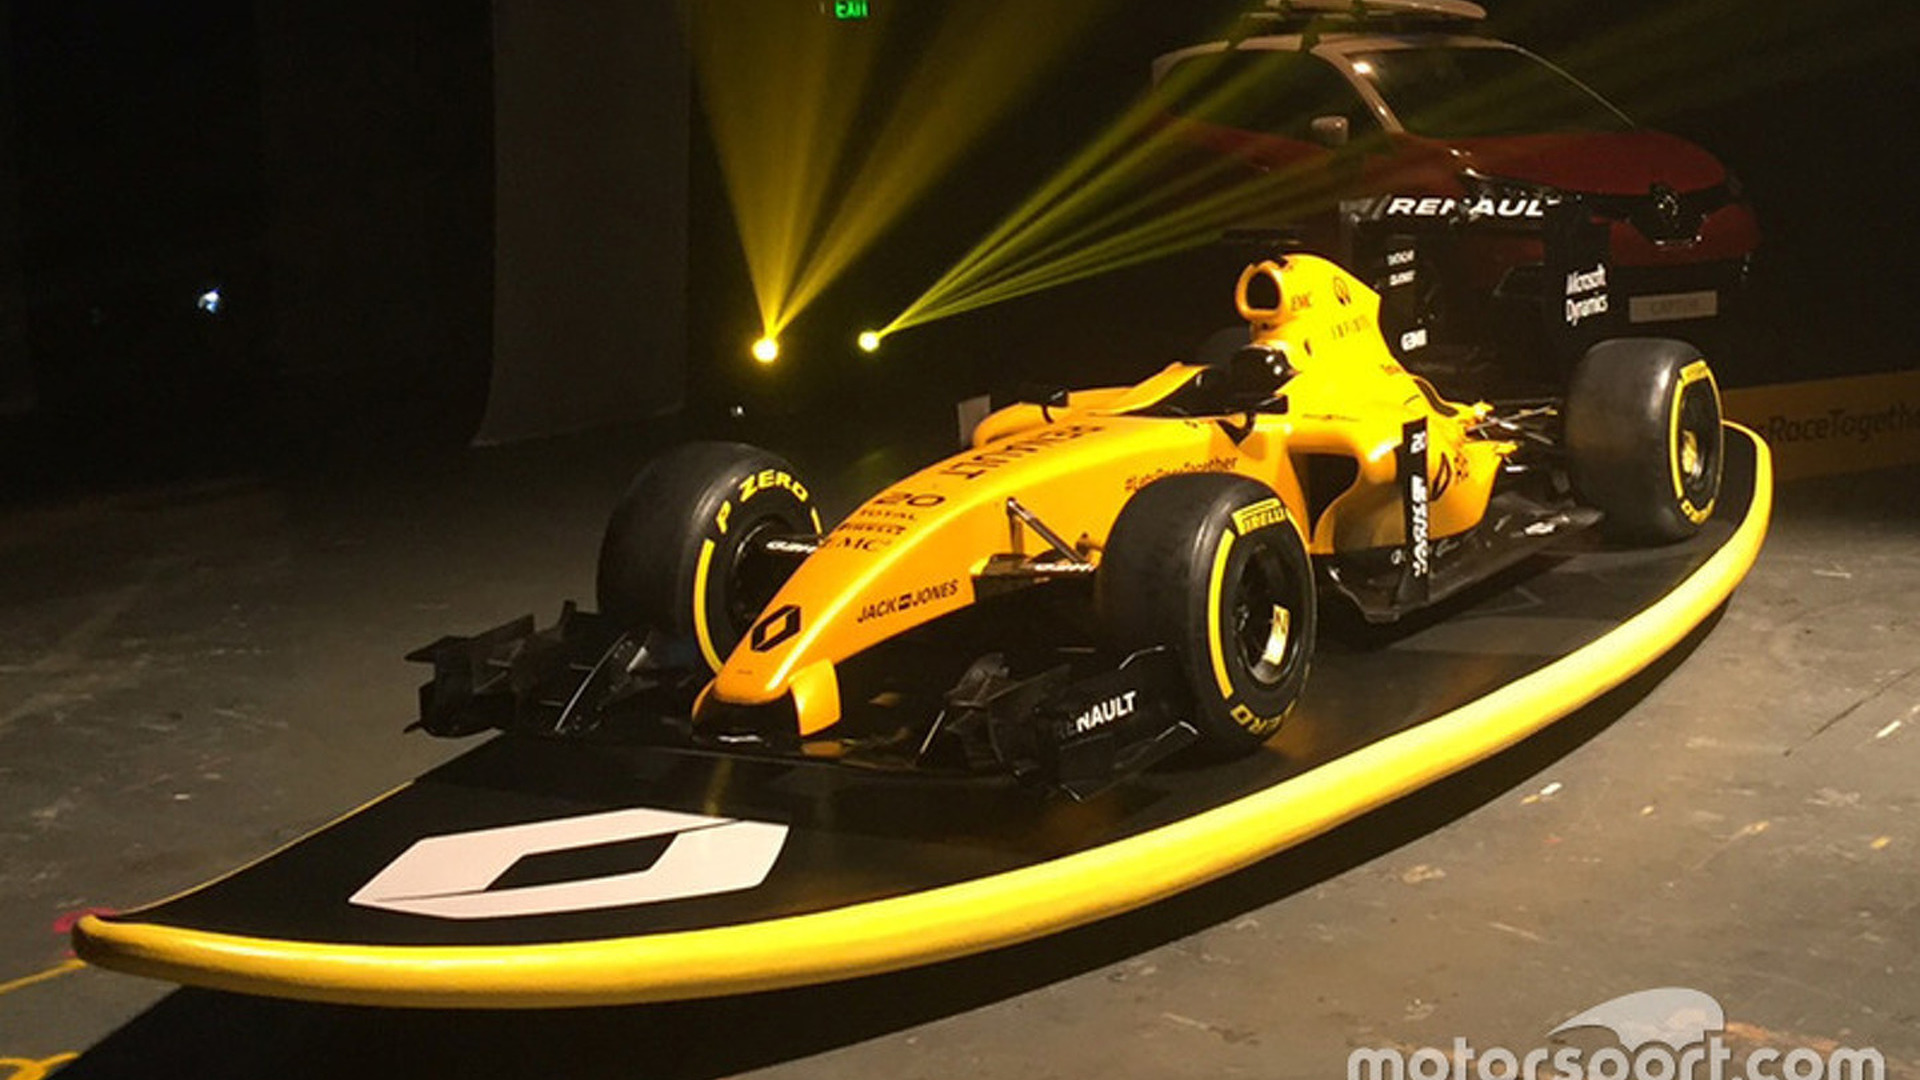 Renault reveals revamped F1 livery